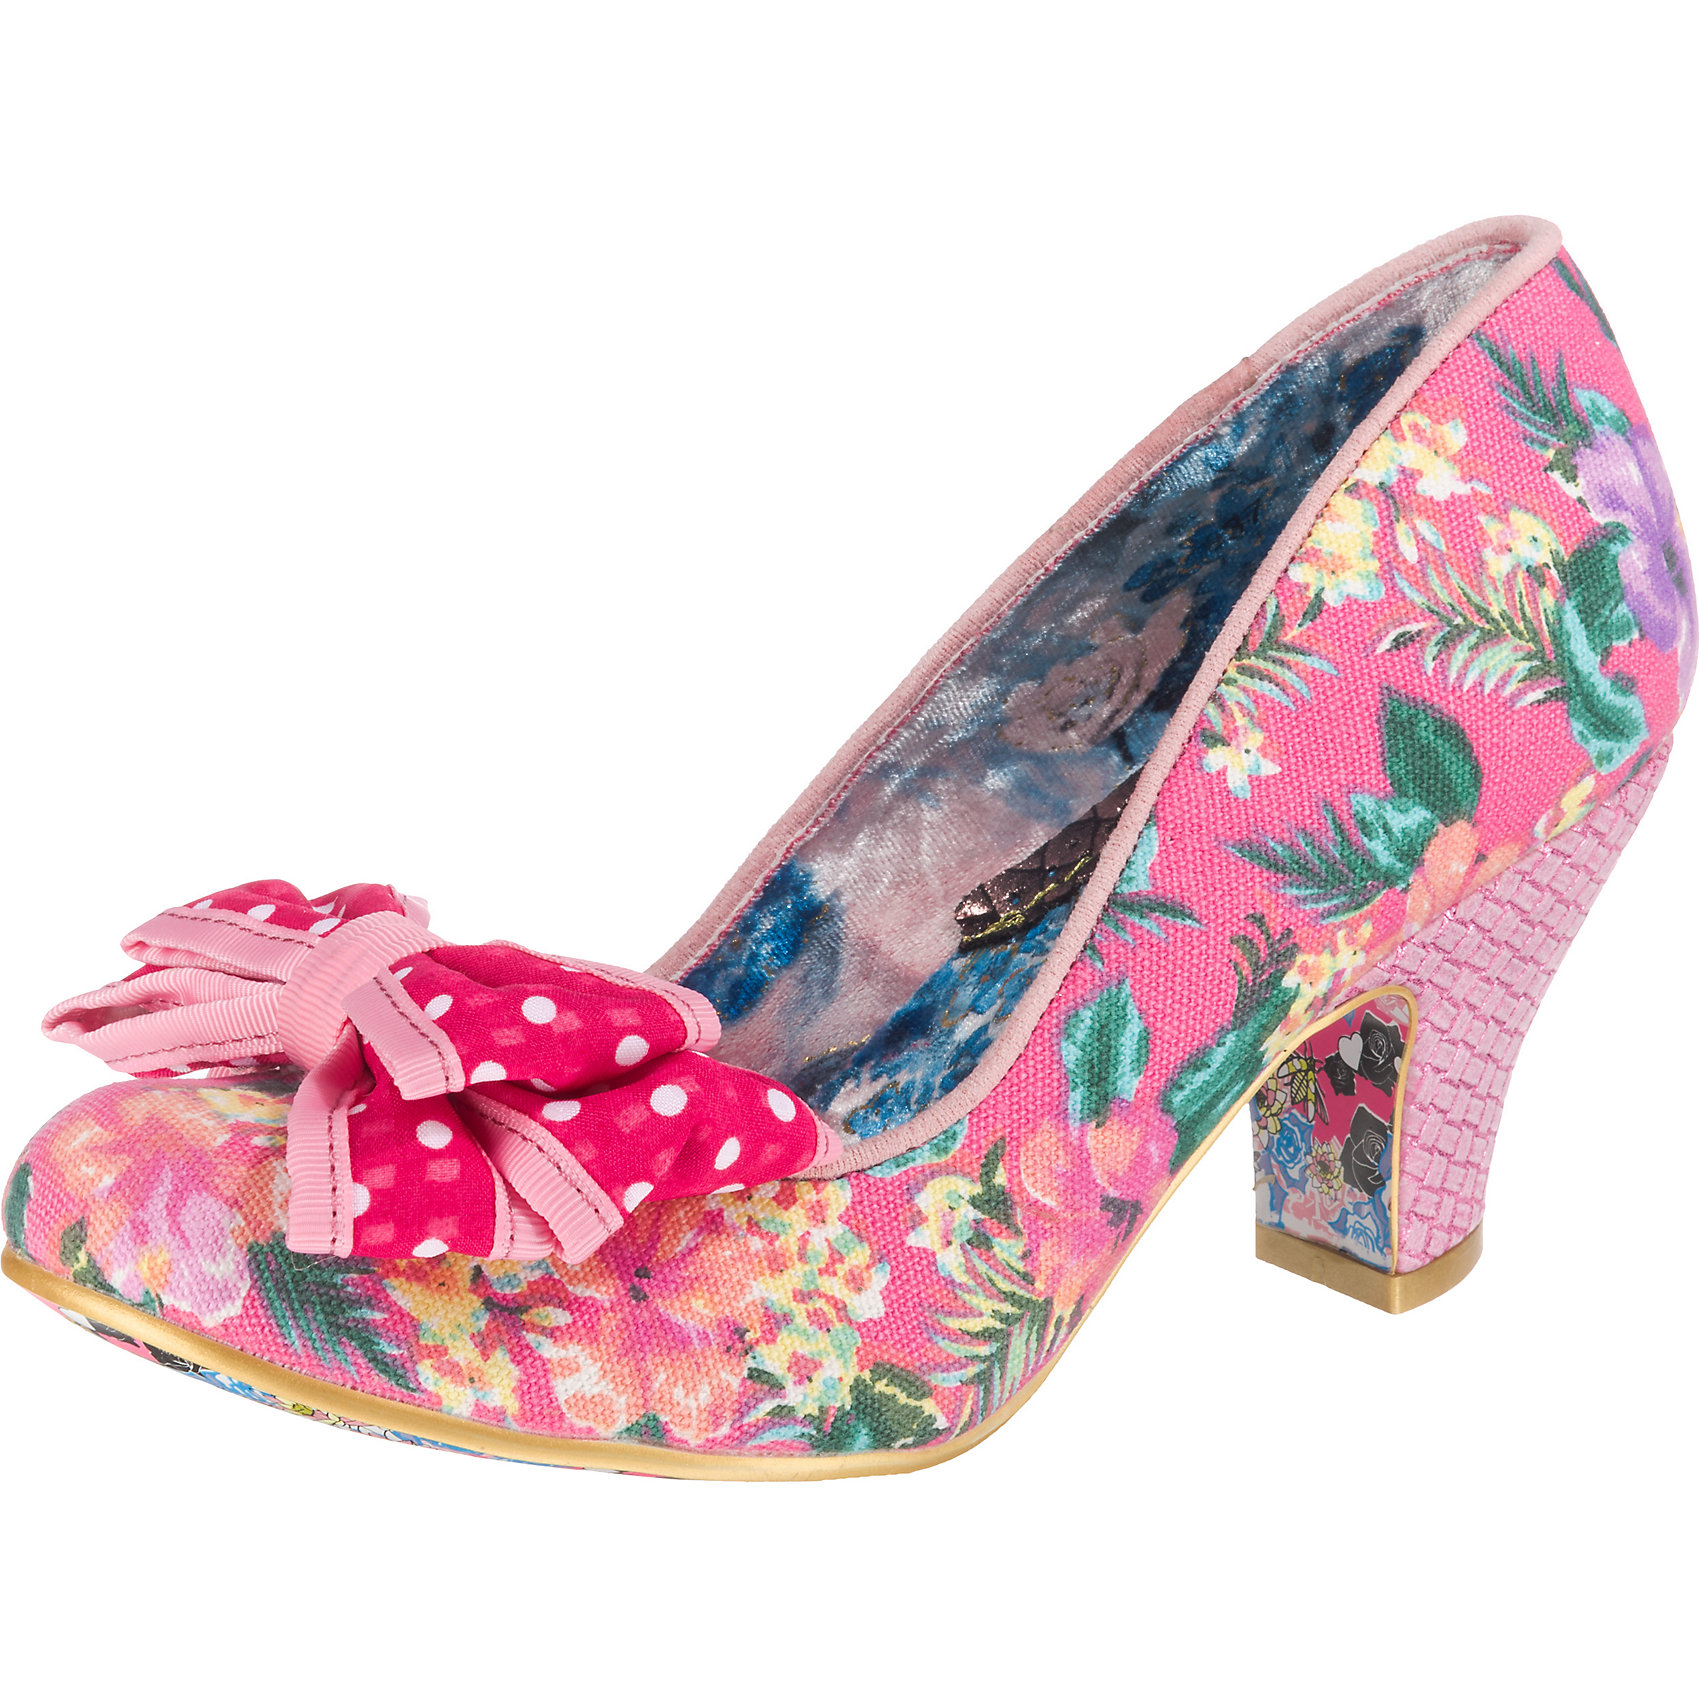 Neu Irregular Choice Ban Joe Klassische Pumps für 7647228 für Pumps Damen 10e71c